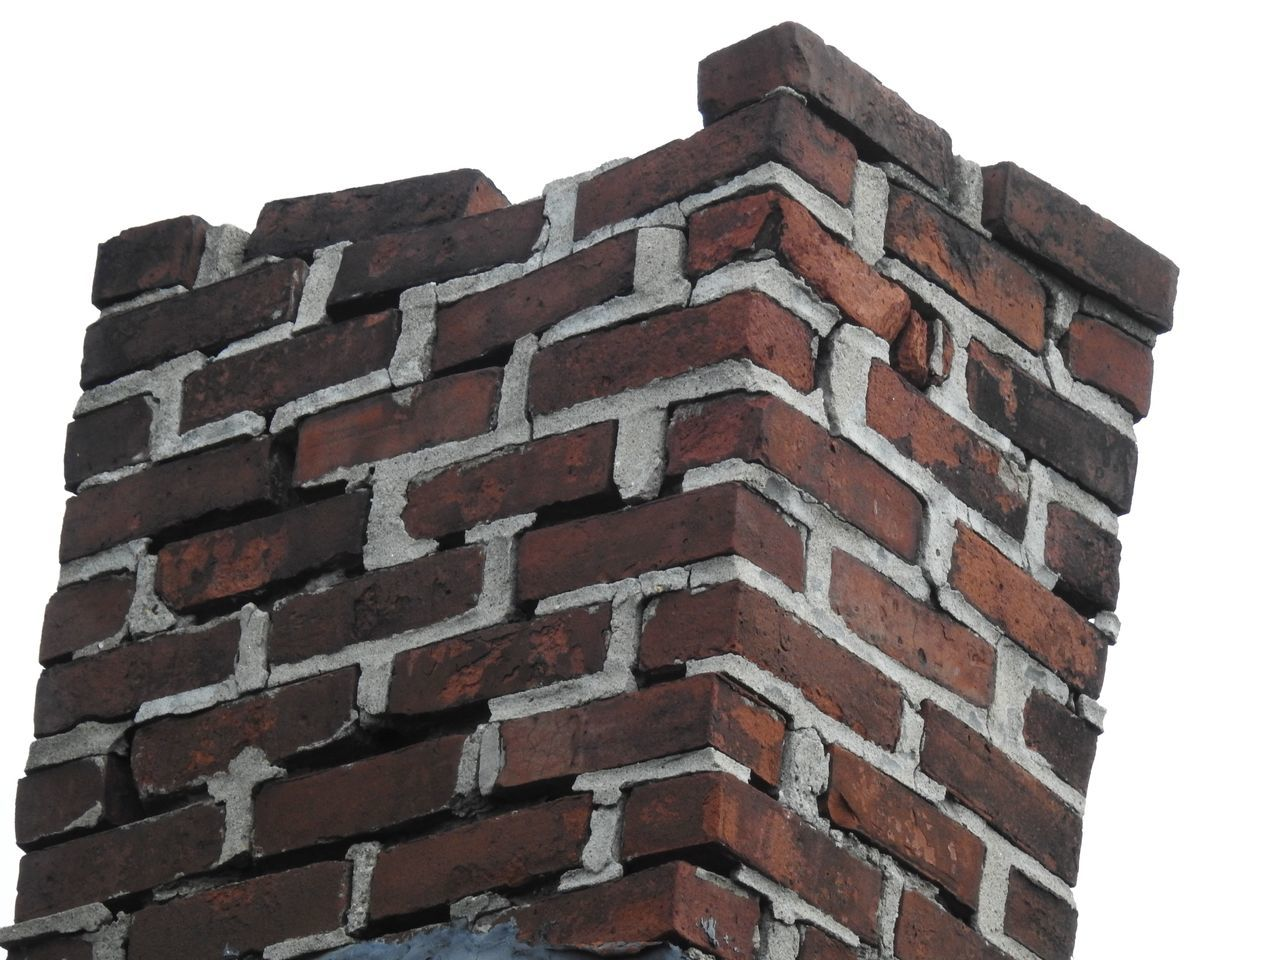 Architecture Brick Chimney Bricklayers Bricks Built Structure Chimney Chimney Bricks Chimney Stacks Chimney Tops Chimneys Dilapidated Chimney Falling Apart Falling Down In Need Of Repair Jobs Low Angle View Mason Masonry Old Chimney Run Down Unsafe